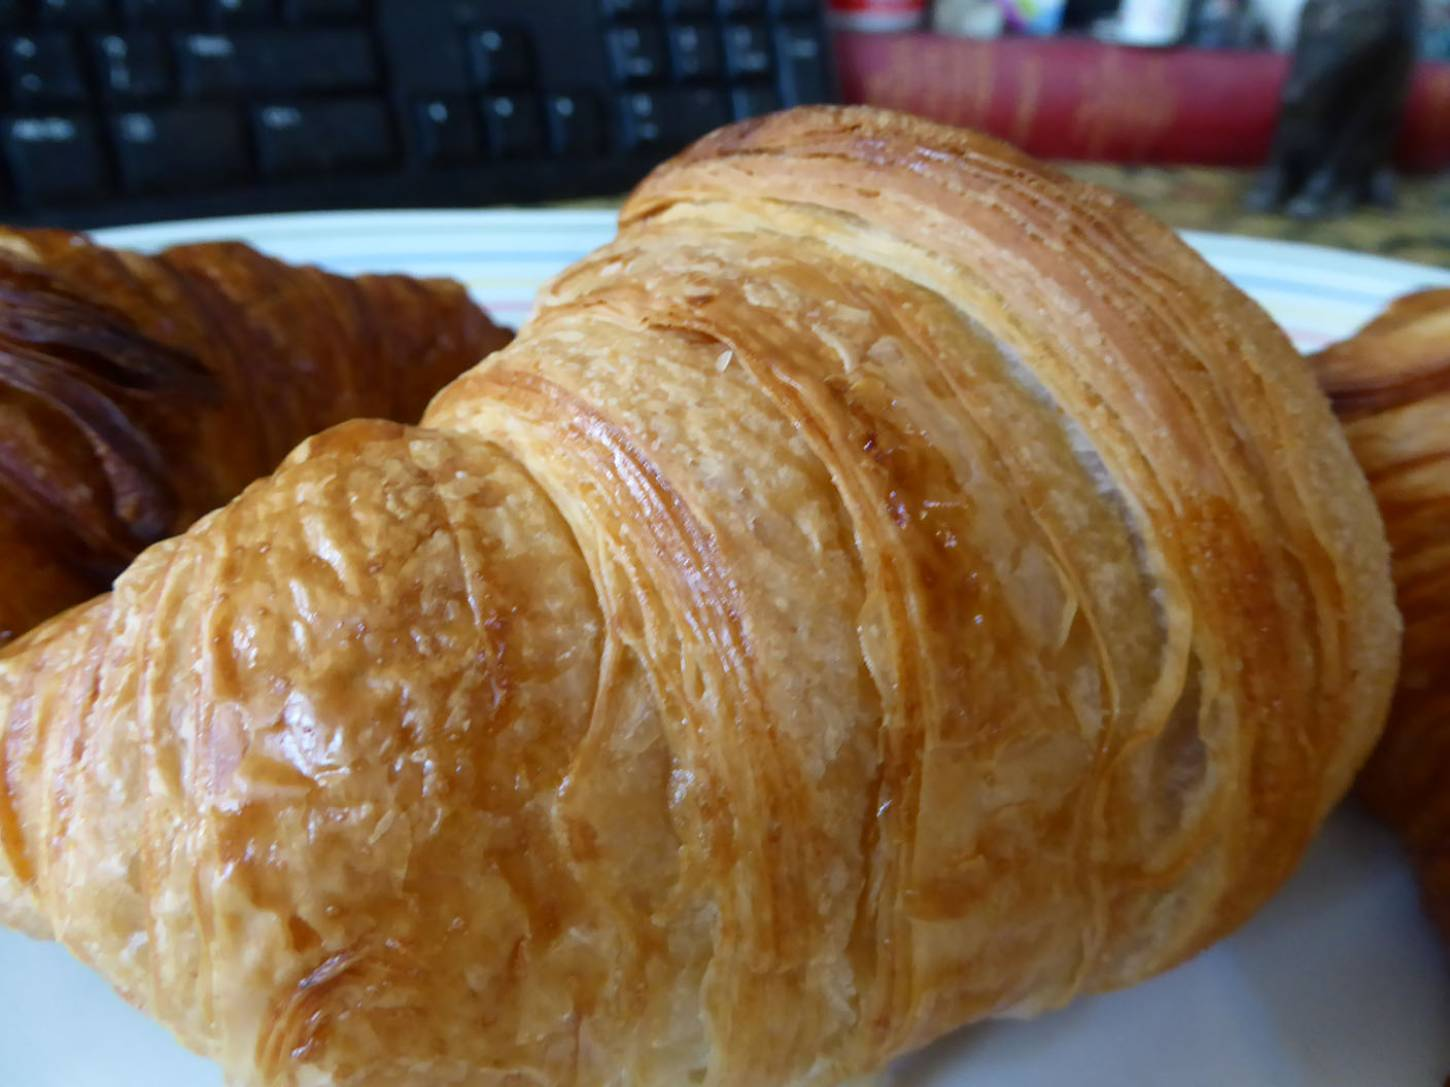 croissant test, L <a href='https://www.instagram.com/little_bread_pedlar/' target='_blank'>Little Bread Pedlar</a> (84g) M (ours) <a href='https://www.instagram.com/cablebakery/' target='_blank'>Cable Bakery</a> (92g) R <a href='https://www.instagram.com/thebakehouseputney/' target='_blank'>Bakehouse Putney</a> (102g). Bake on ours rather light ... - 2:01pm&nbsp;15<sup>th</sup>&nbsp;Oct.&nbsp;'17  <a href='http://maps.google.com/?t=h&q=51.471028,-0.103839&z=18&output=embed' target=_blank><img src='http://www.brockwell-bake.org.uk/img/marker.png' style='border:none;vertical-align:top' height=16px></a>